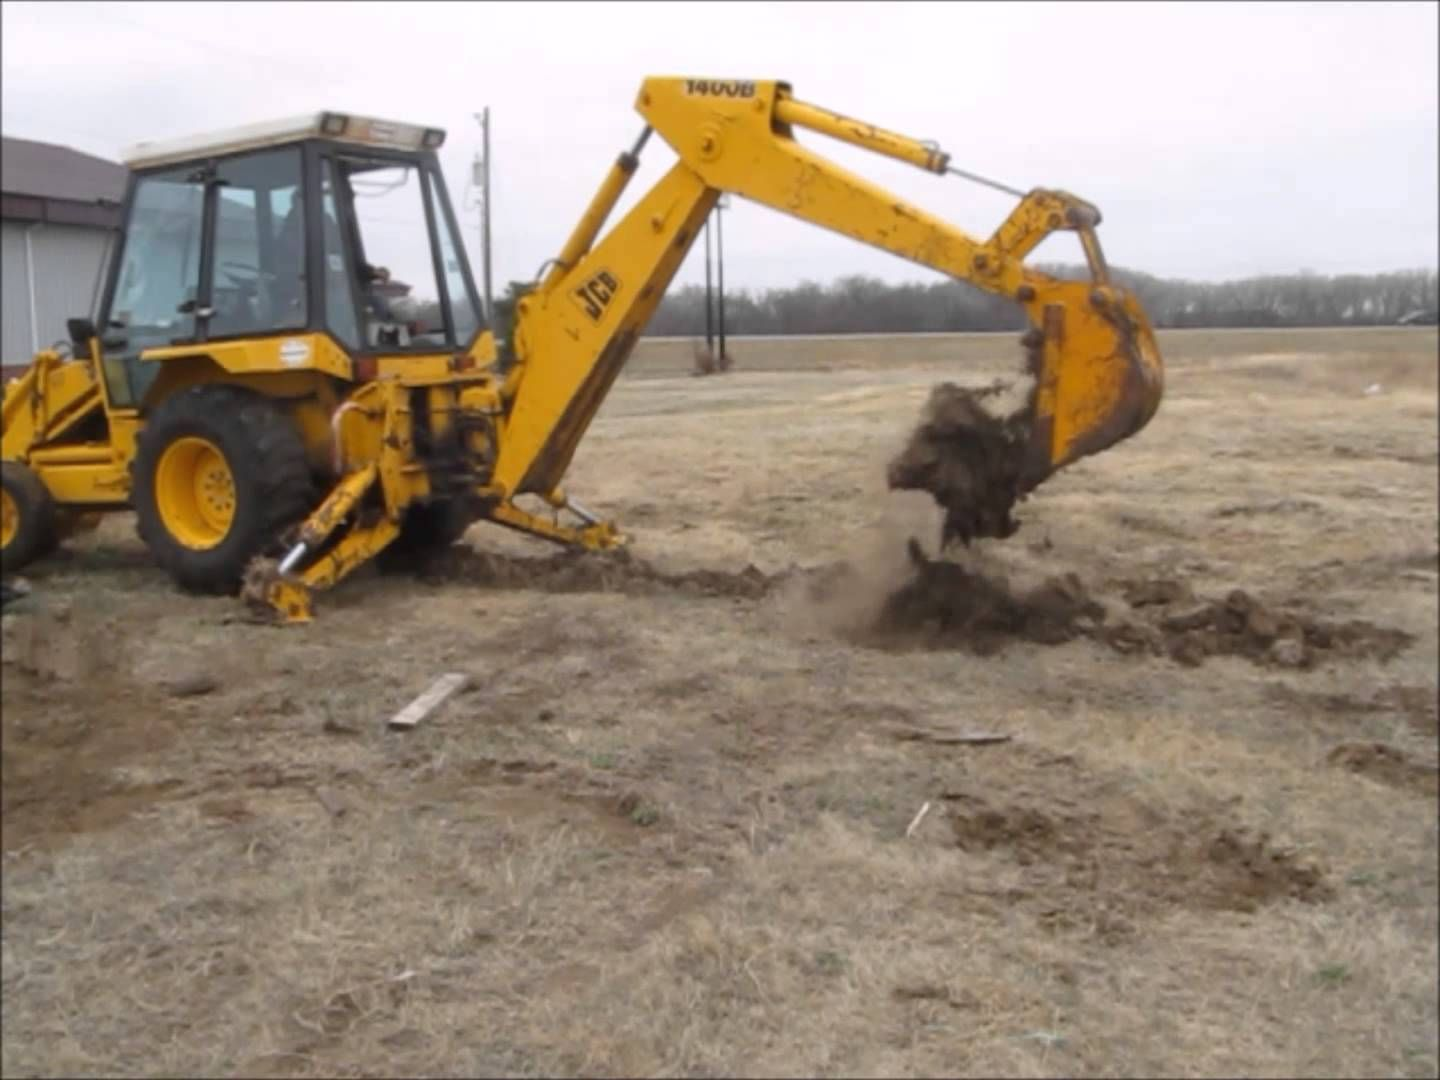 South Carolina, Bryan Smith, Campaign, Backhoe Loader, Workshop, Medium,  Watch, For Sale, Manual